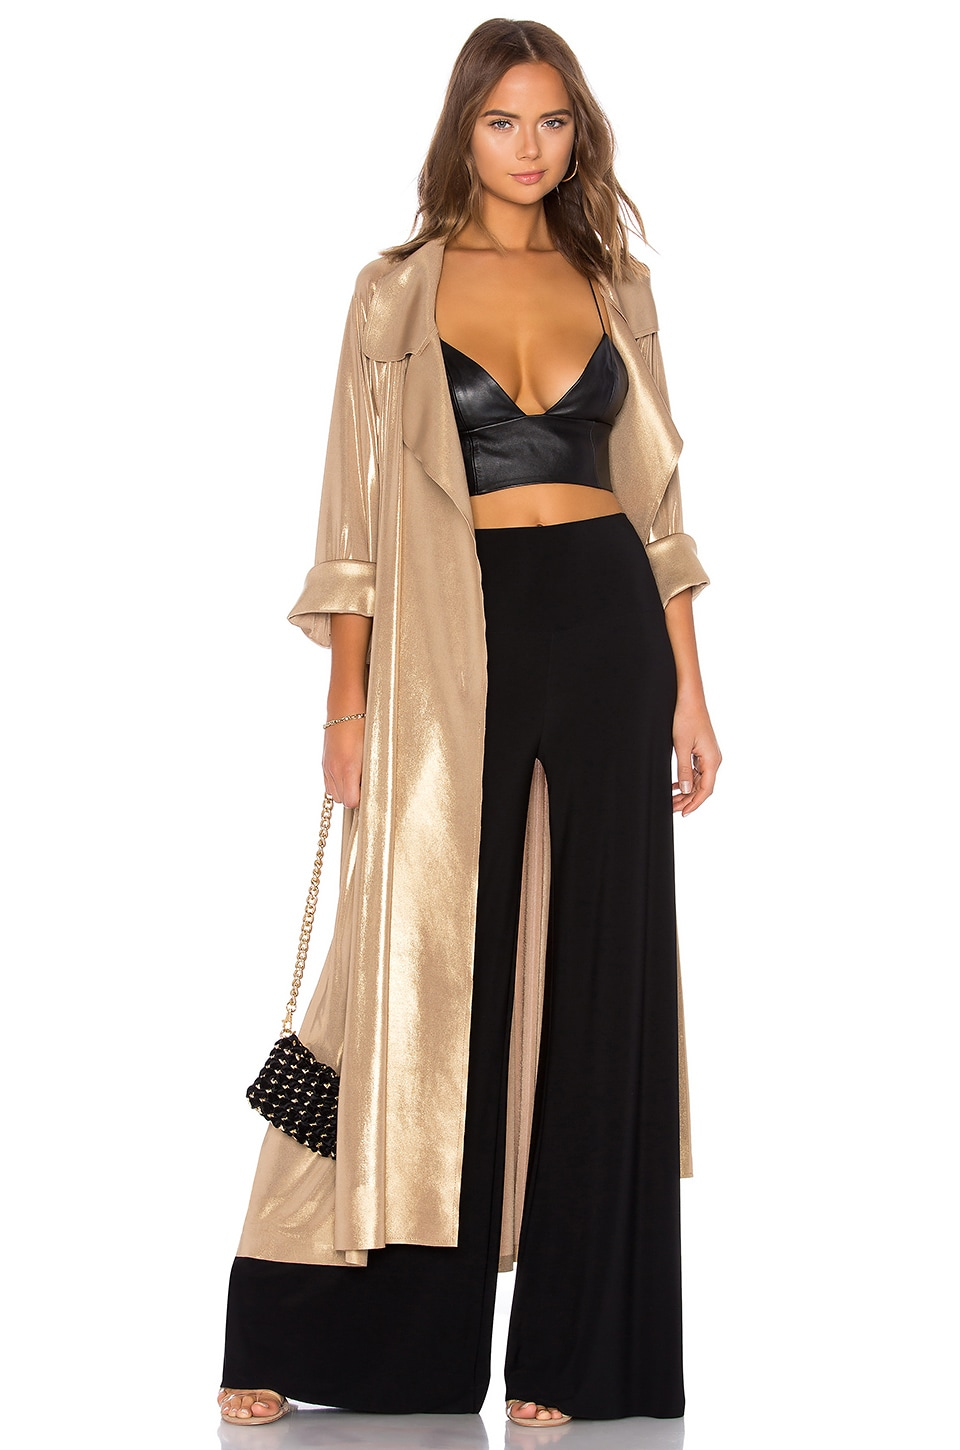 Norma Kamali 80's Flared Trench in Gold